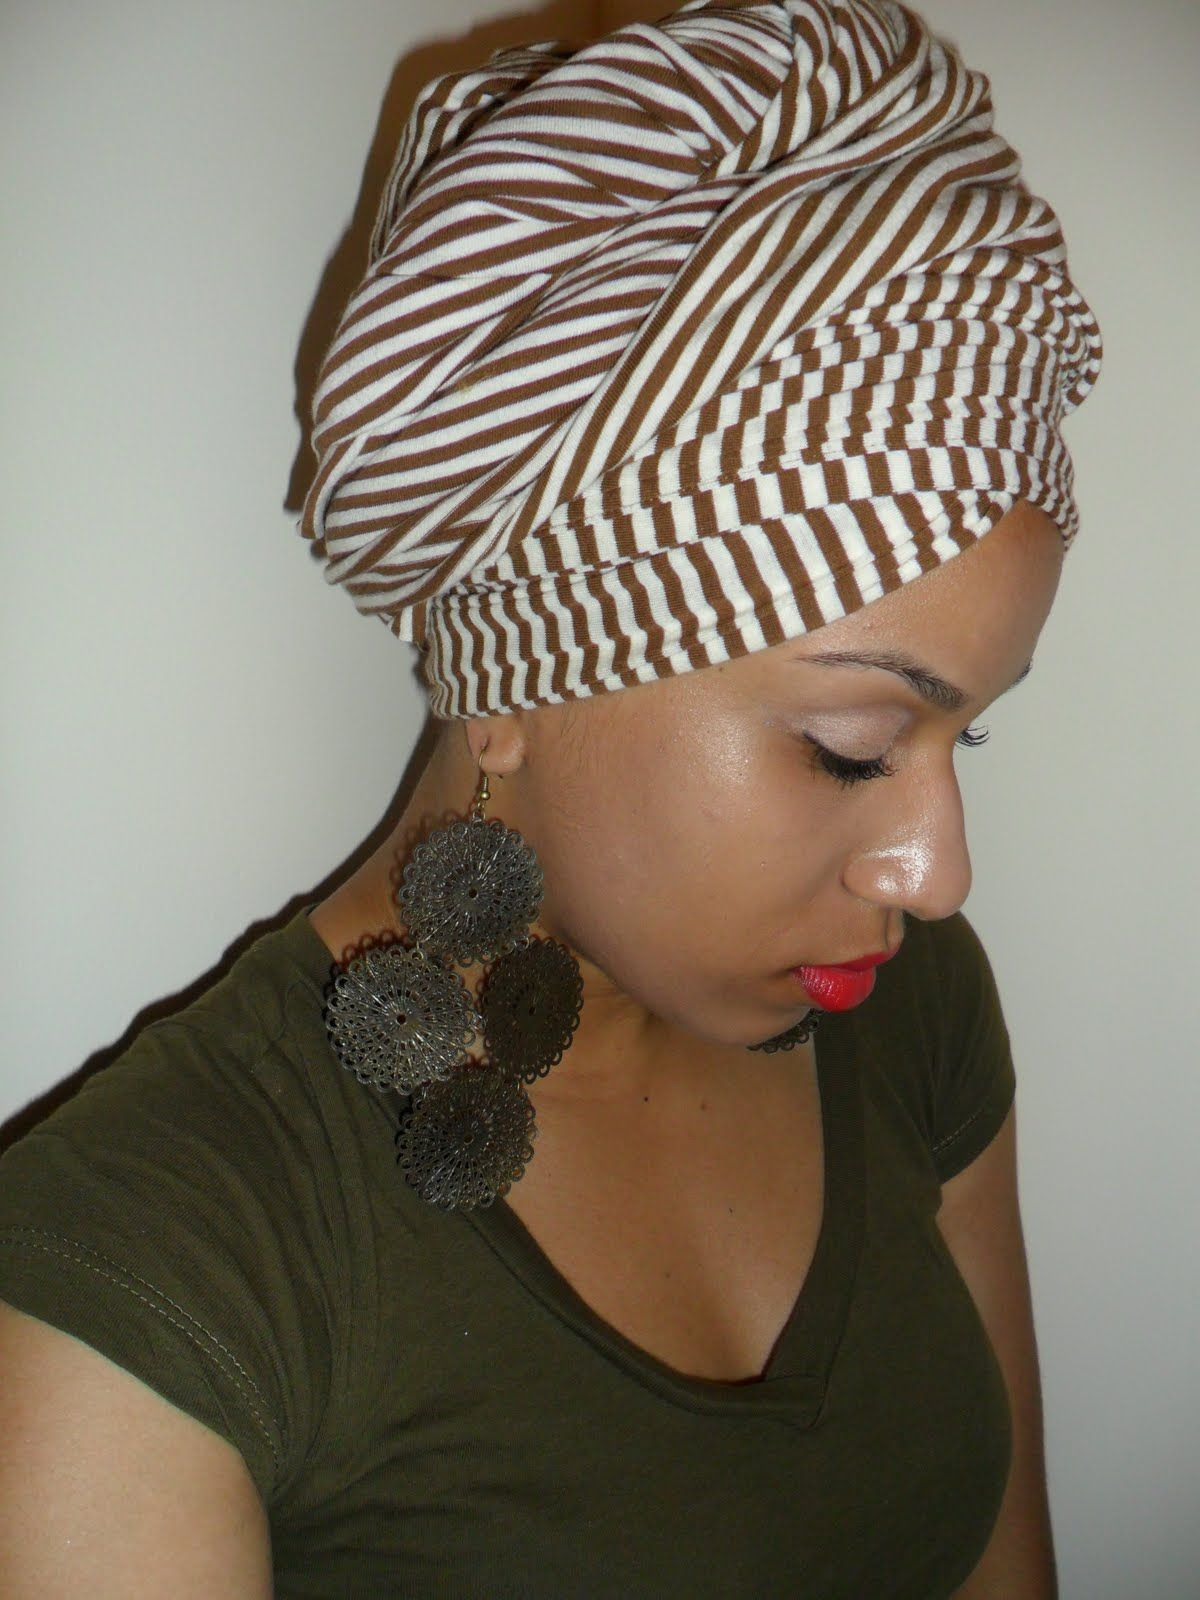 Fashionable head wrap! Get your favorite scraf and protect ...